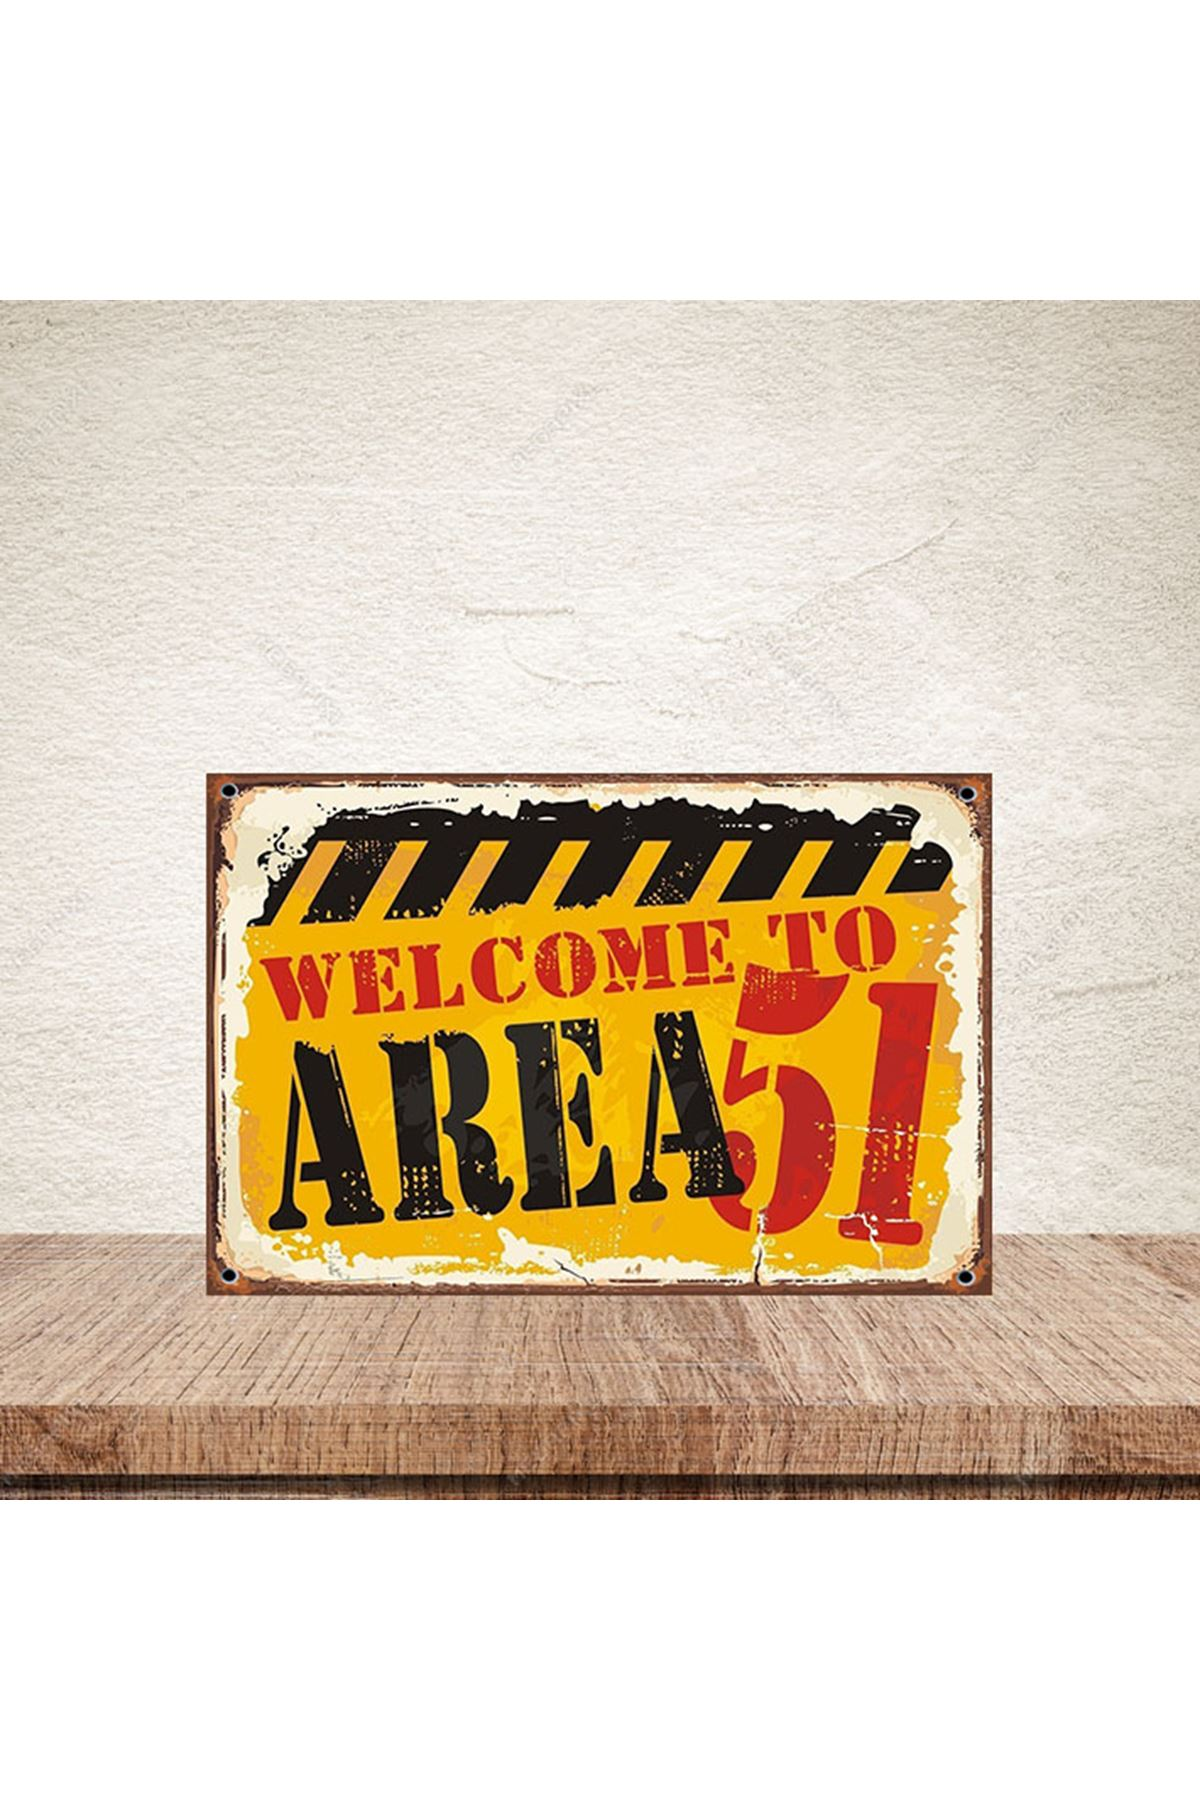 WELCOME TO AREA 51 -AHŞAP POSTER